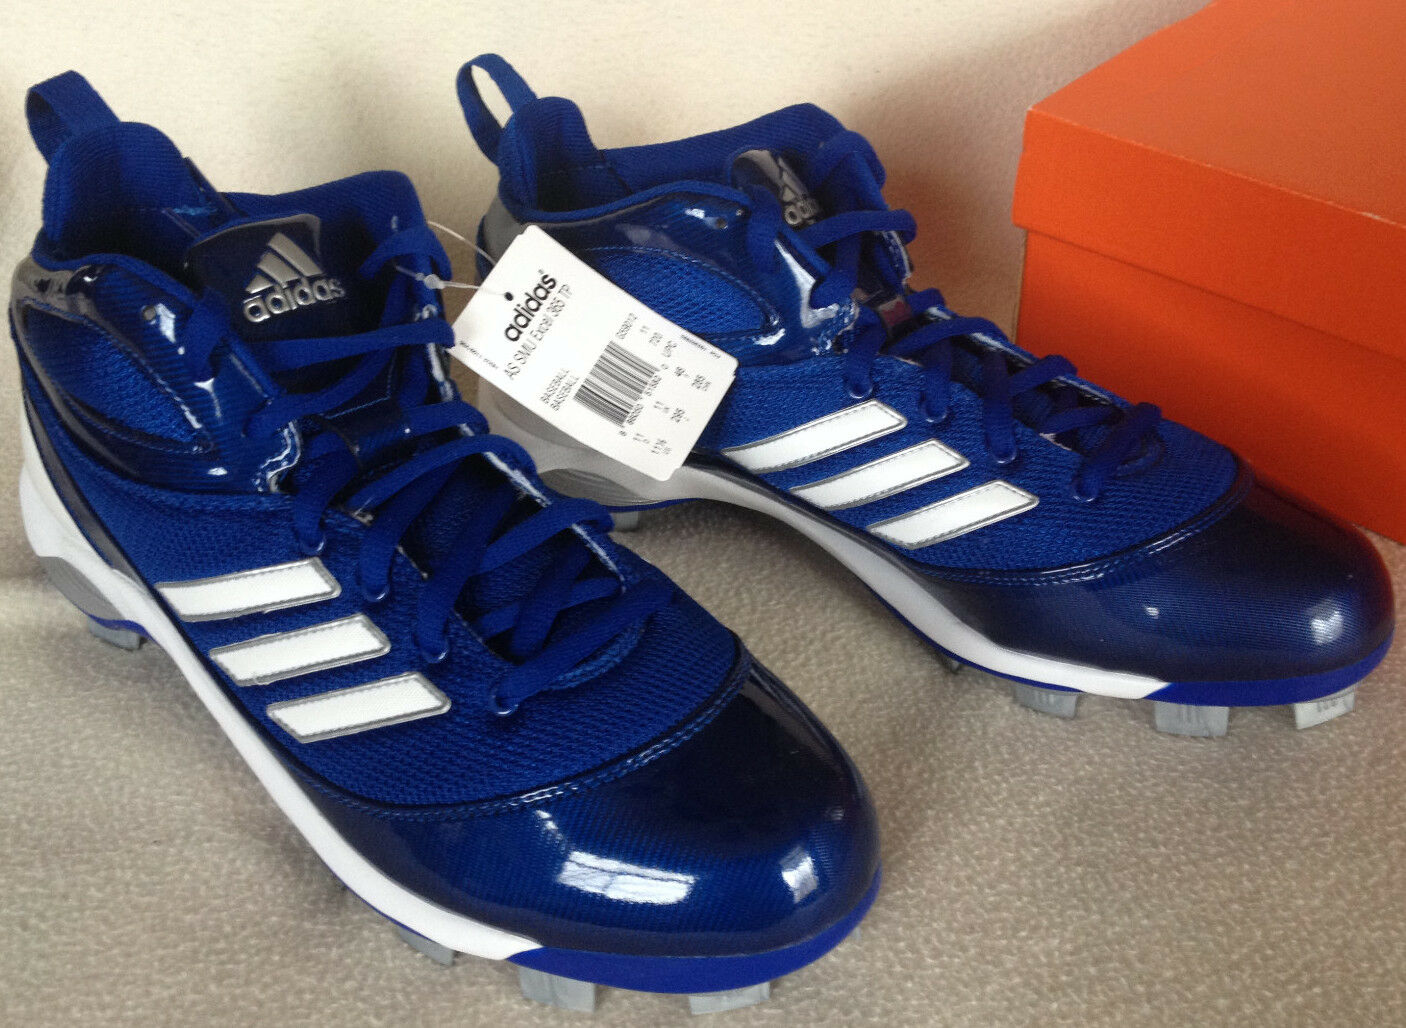 new Adidas AS SMU Excel 365 TP G59012 Blue White Baseball Cleats Shoes Men's 14